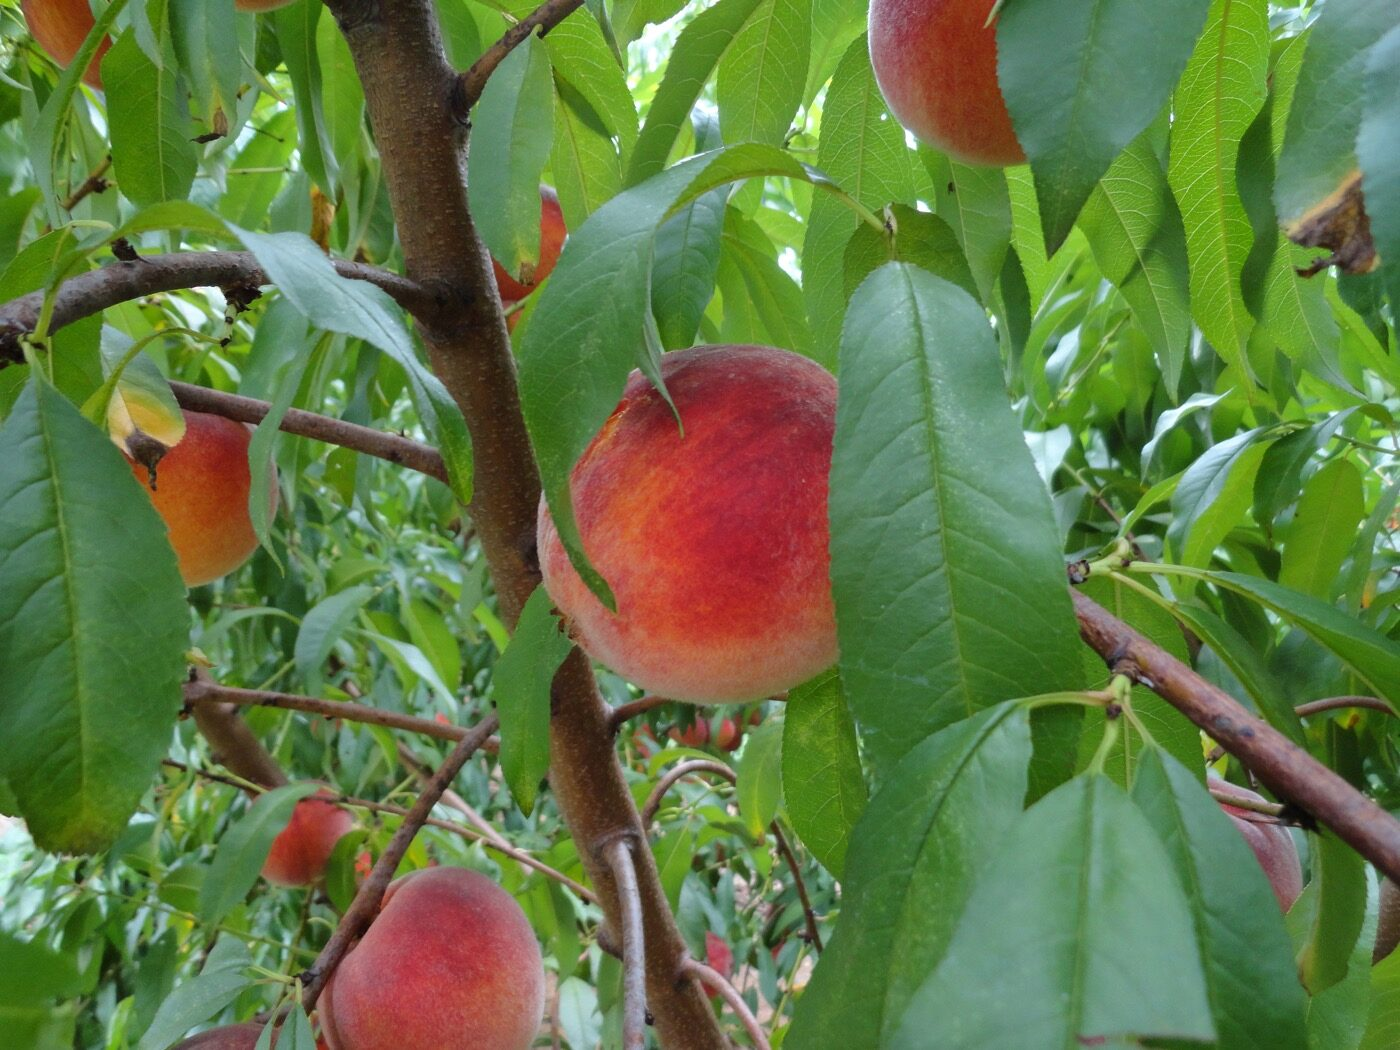 Georgia's peach crop is rebounding after two down years